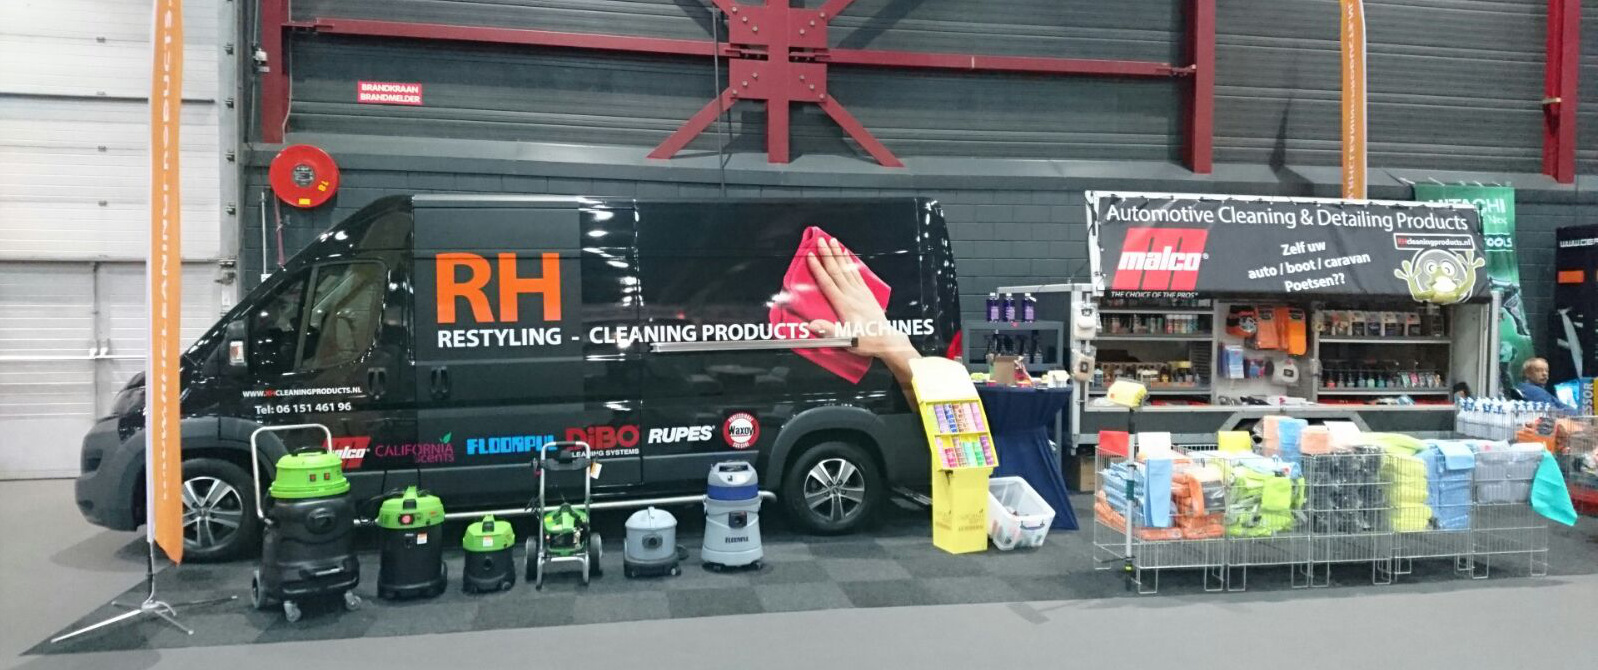 rh cleaning products